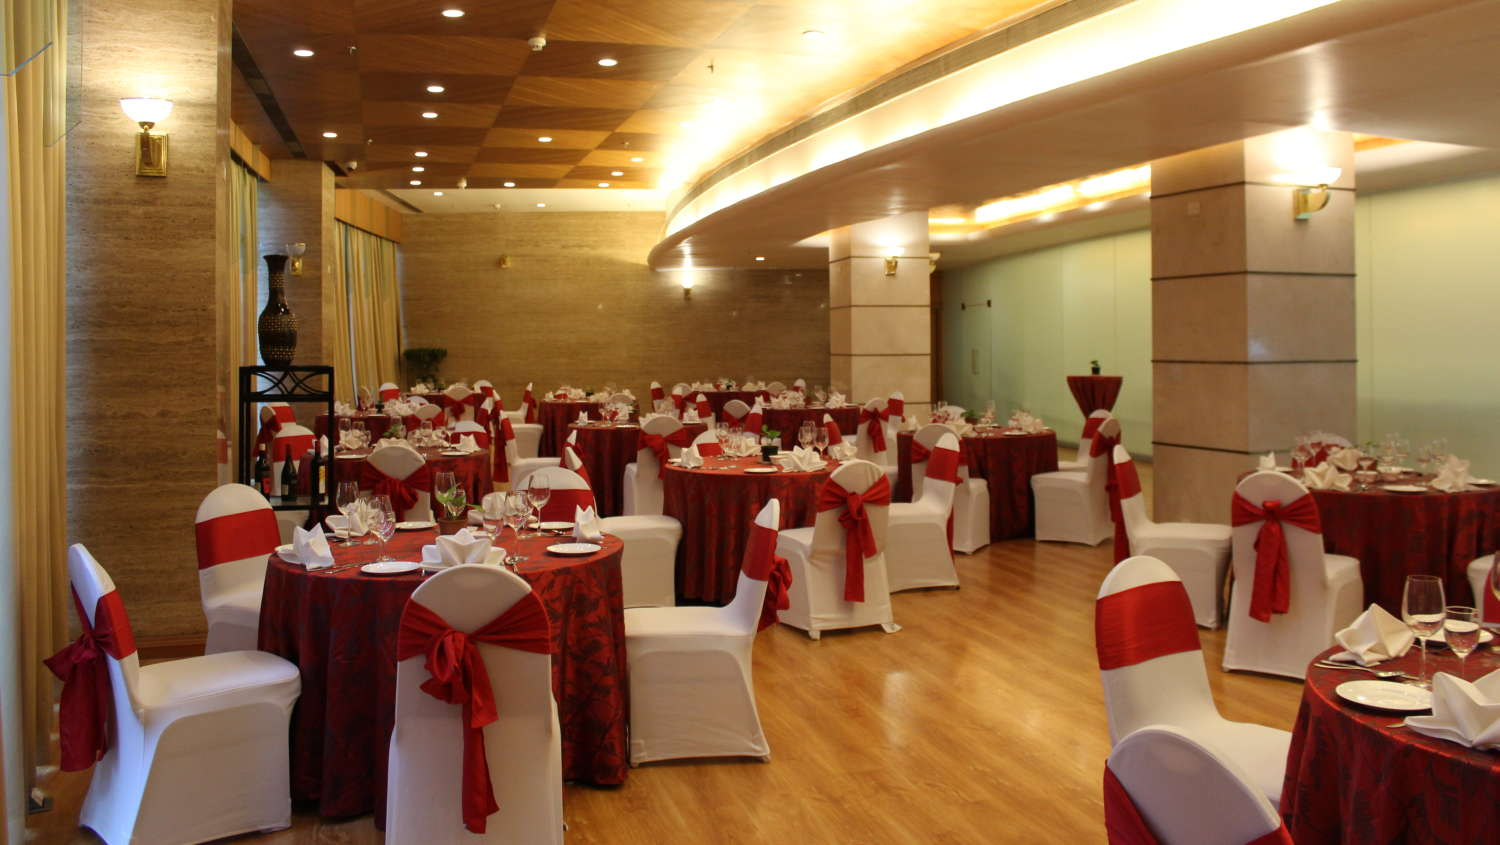 Banquets Business Conferences At The Orchid Hotel Mumbai Vile Parle